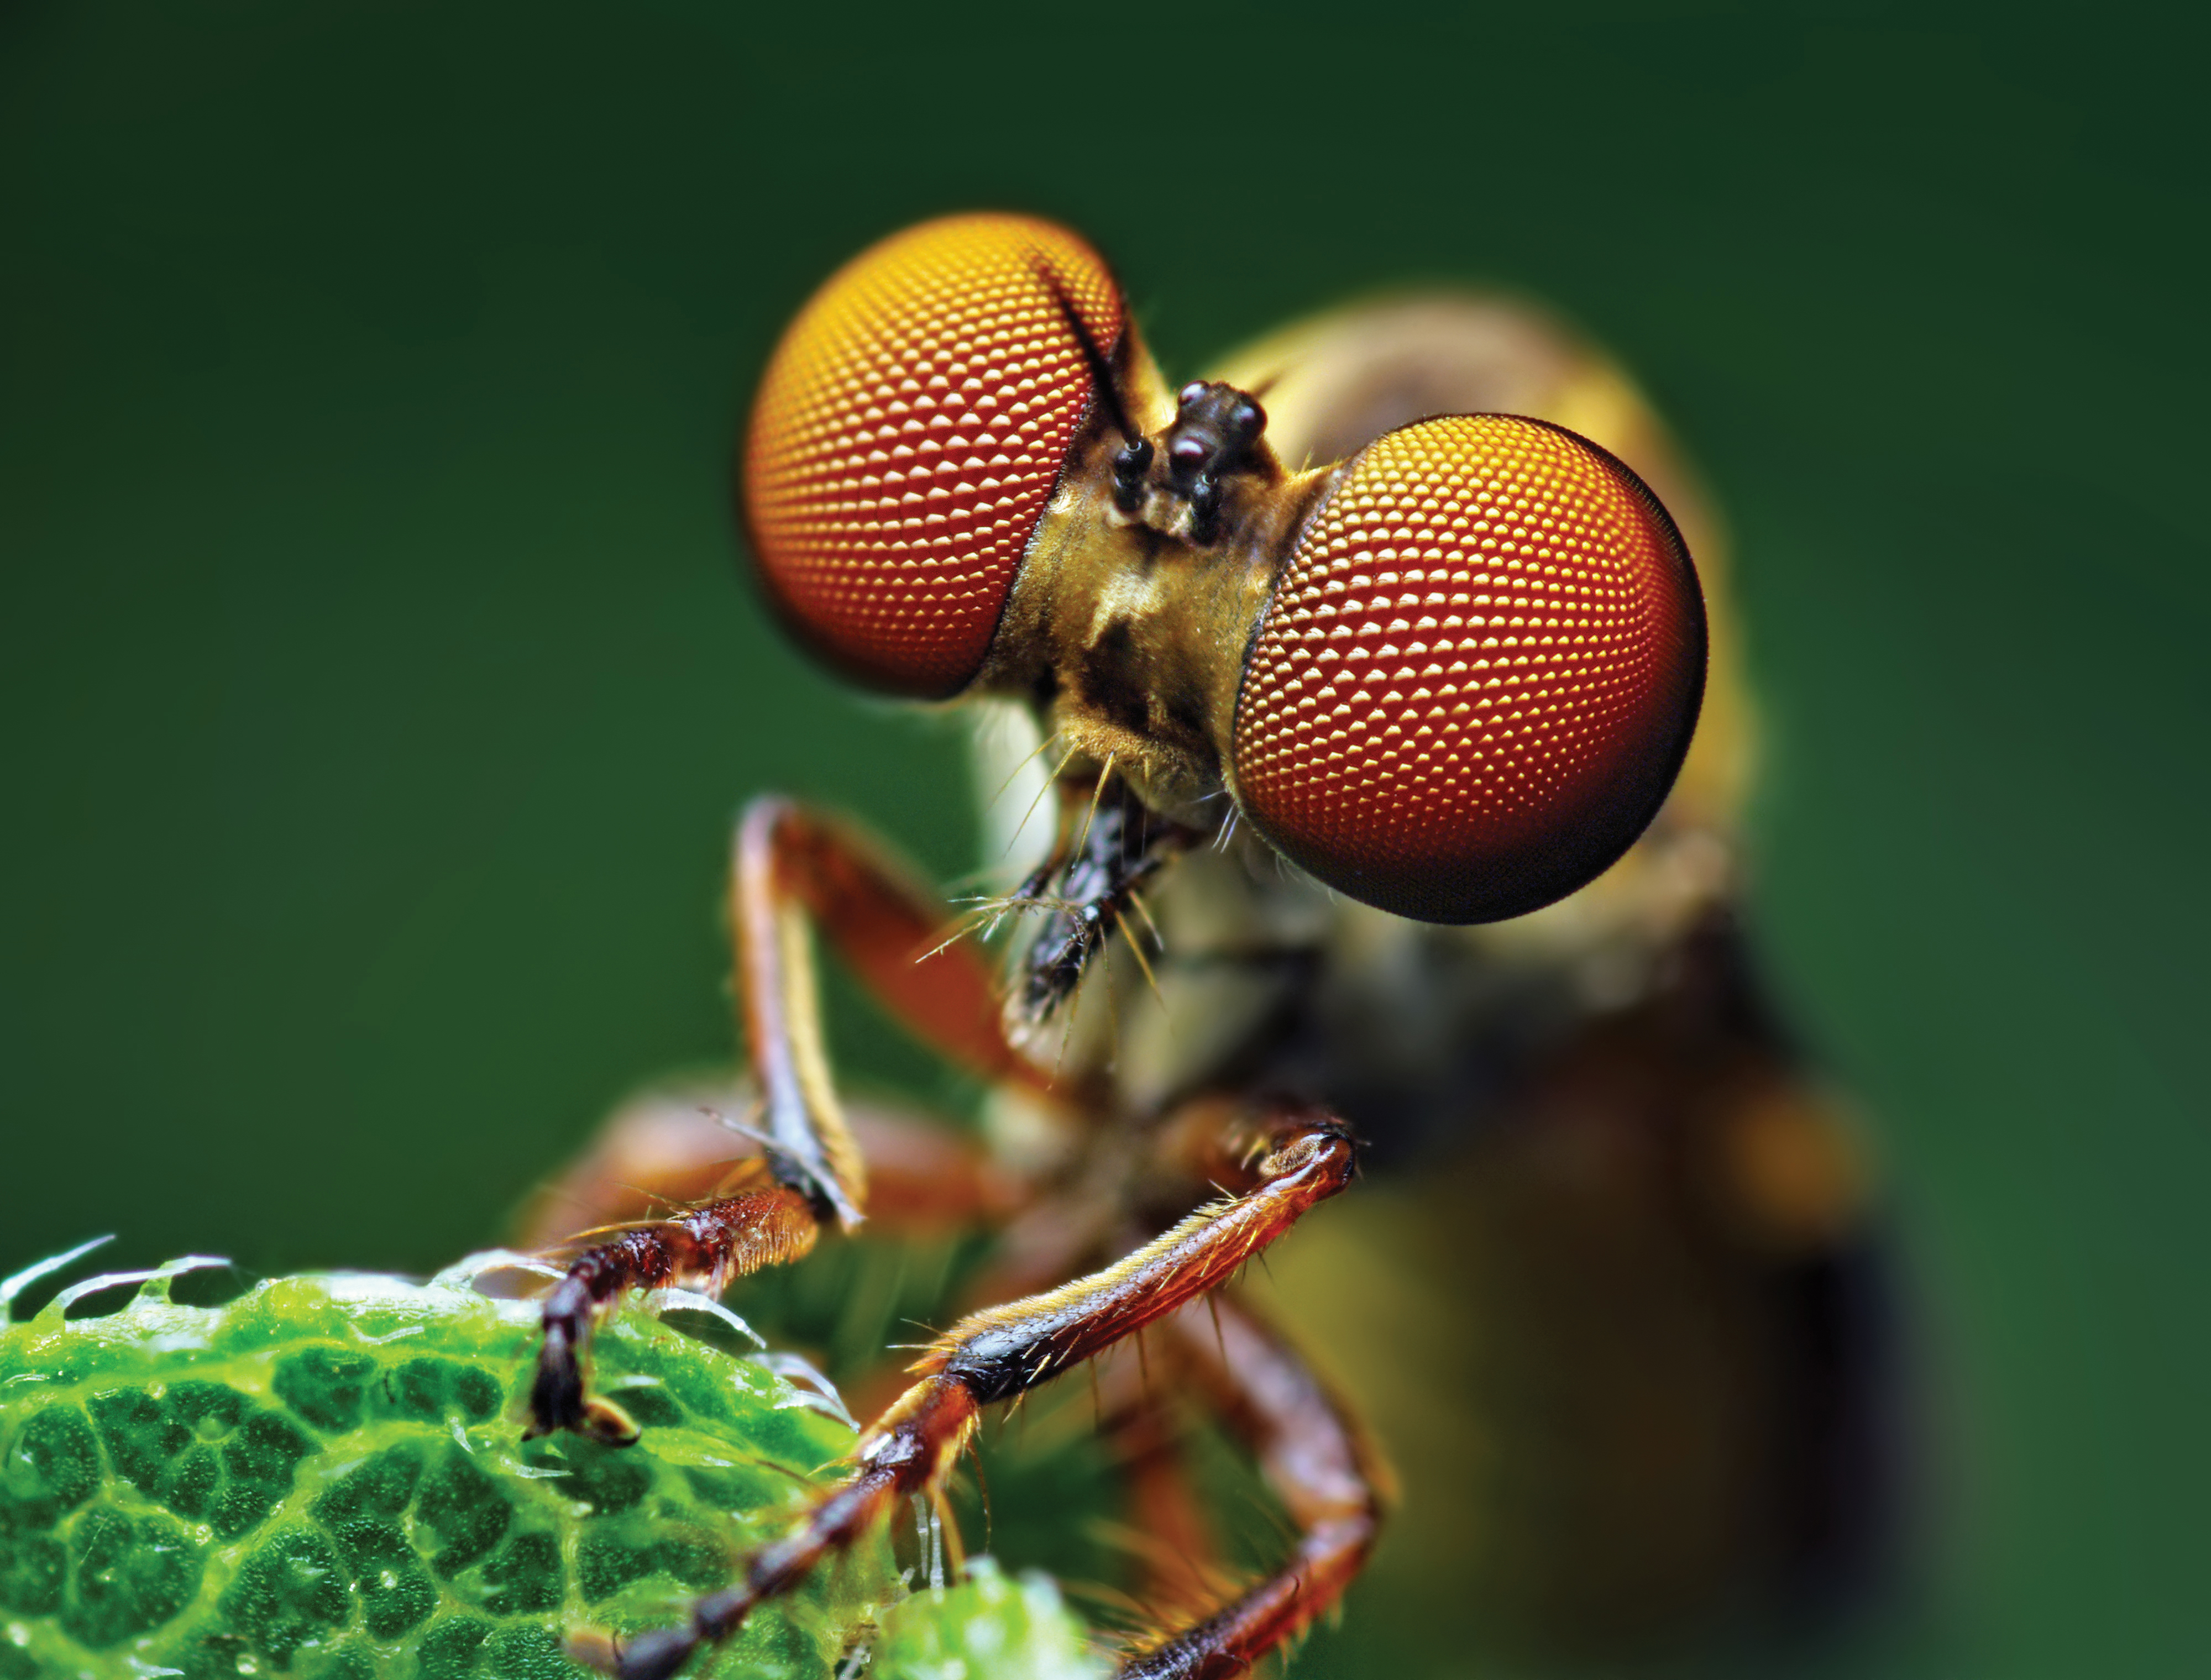 Macro Photography Interview With Thomas Shahan